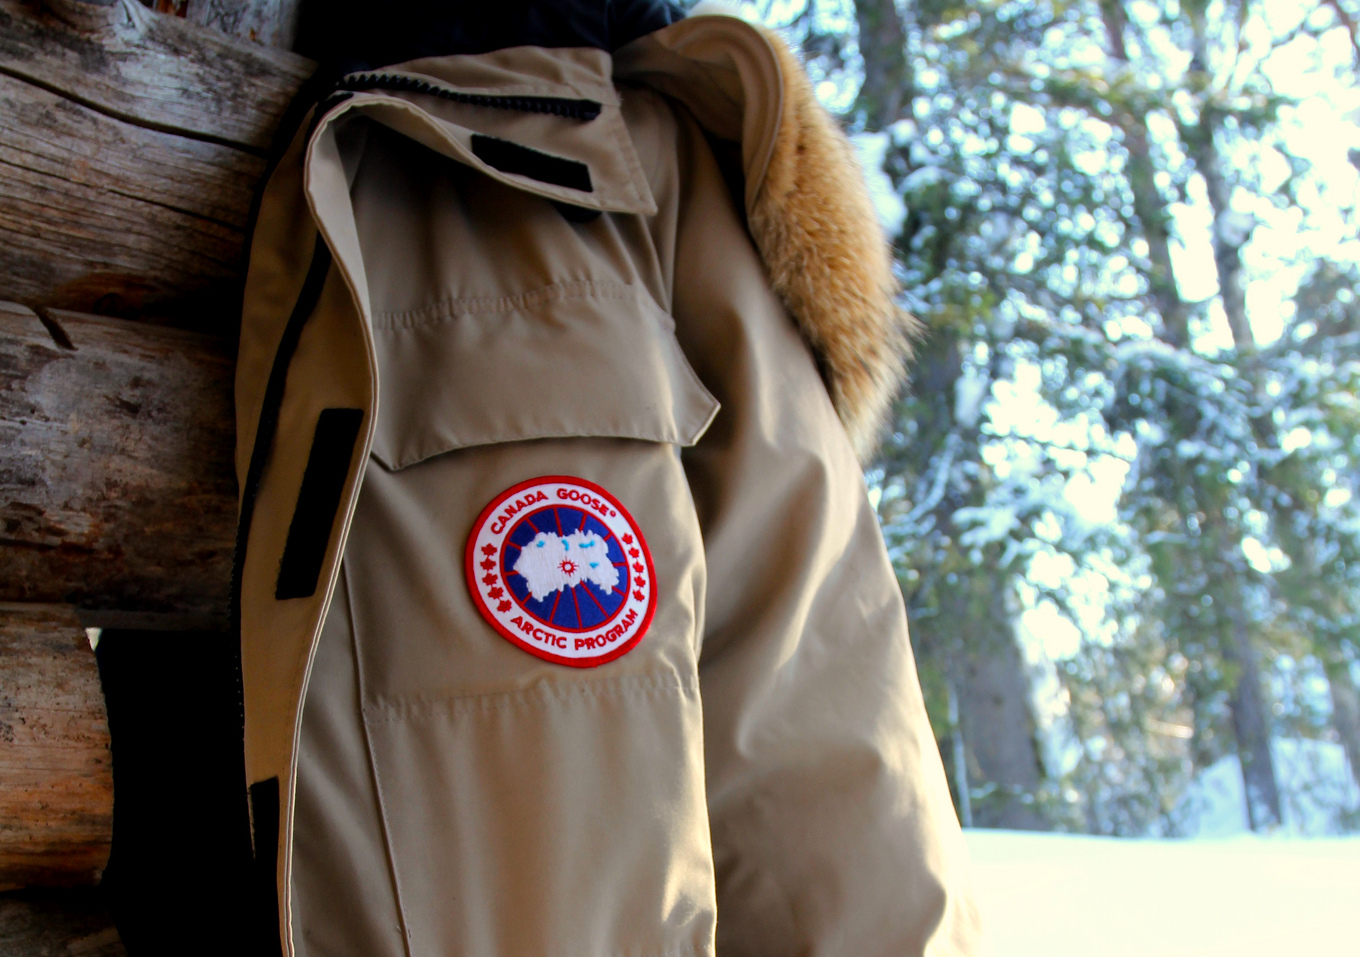 Canada Goose Parker. (Image: Flickr, CC by 2.0)